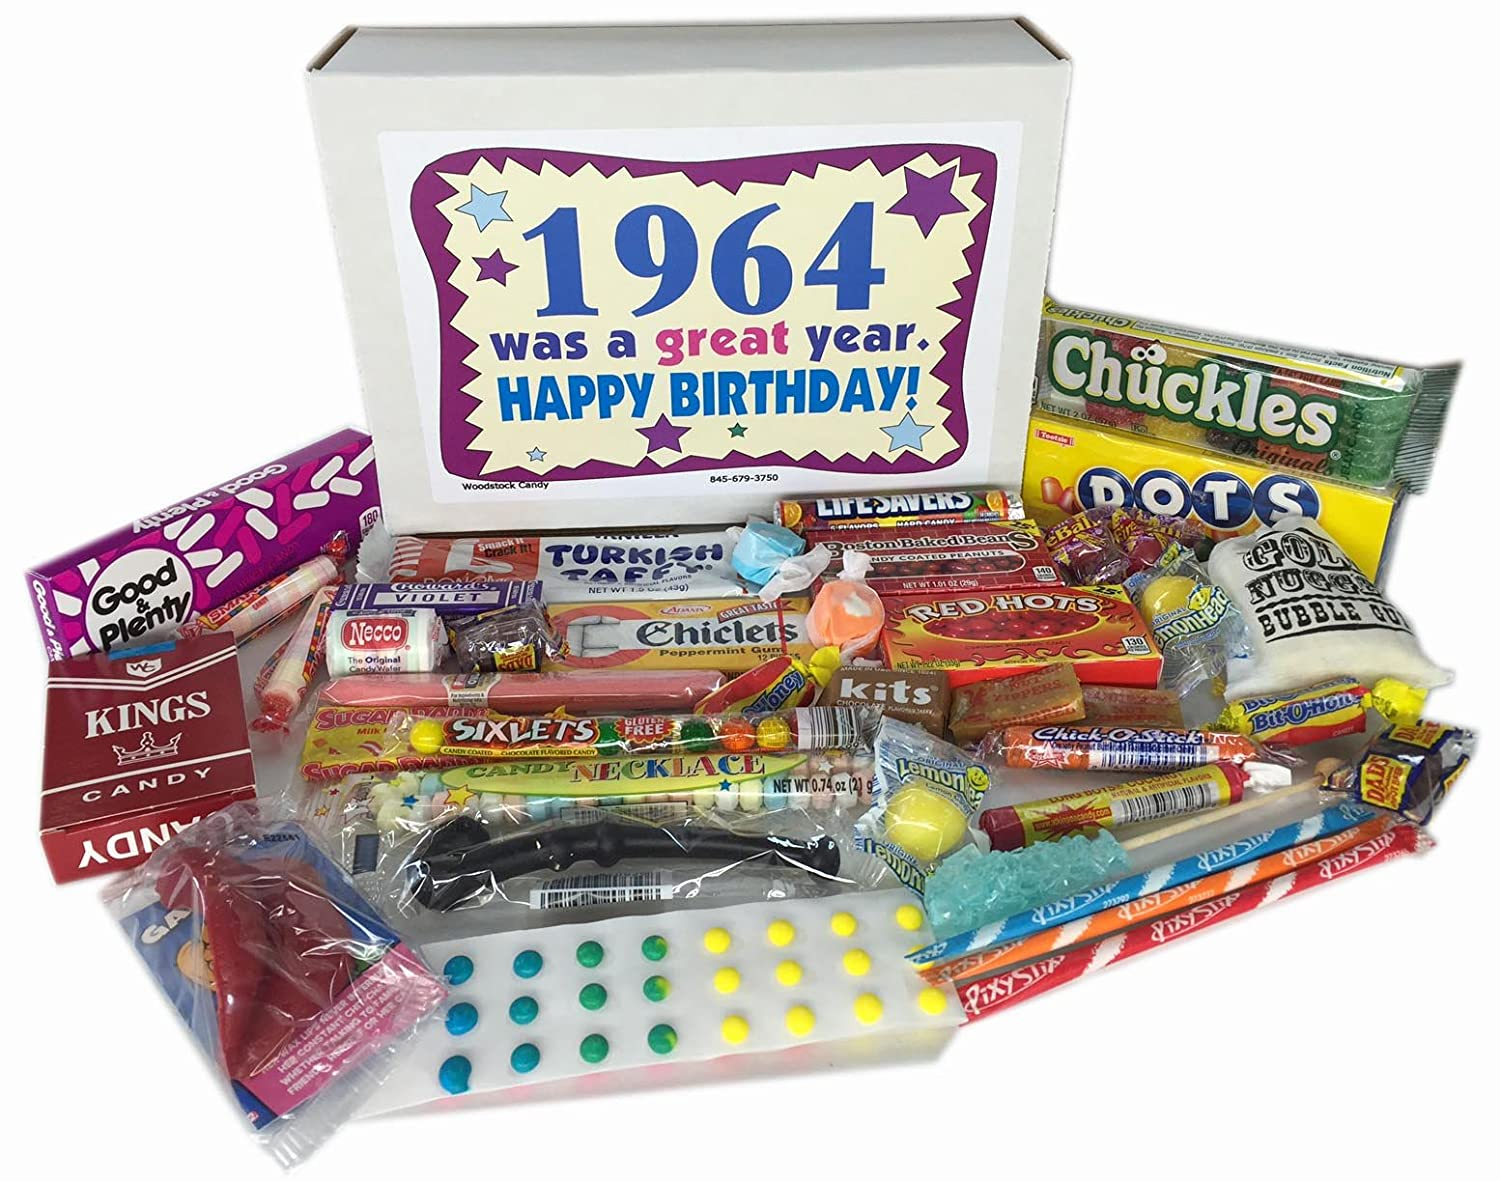 53rd Birthday Gift Box Of Nostalgic Retro Candy For A 53 Year Old Man Or Woman